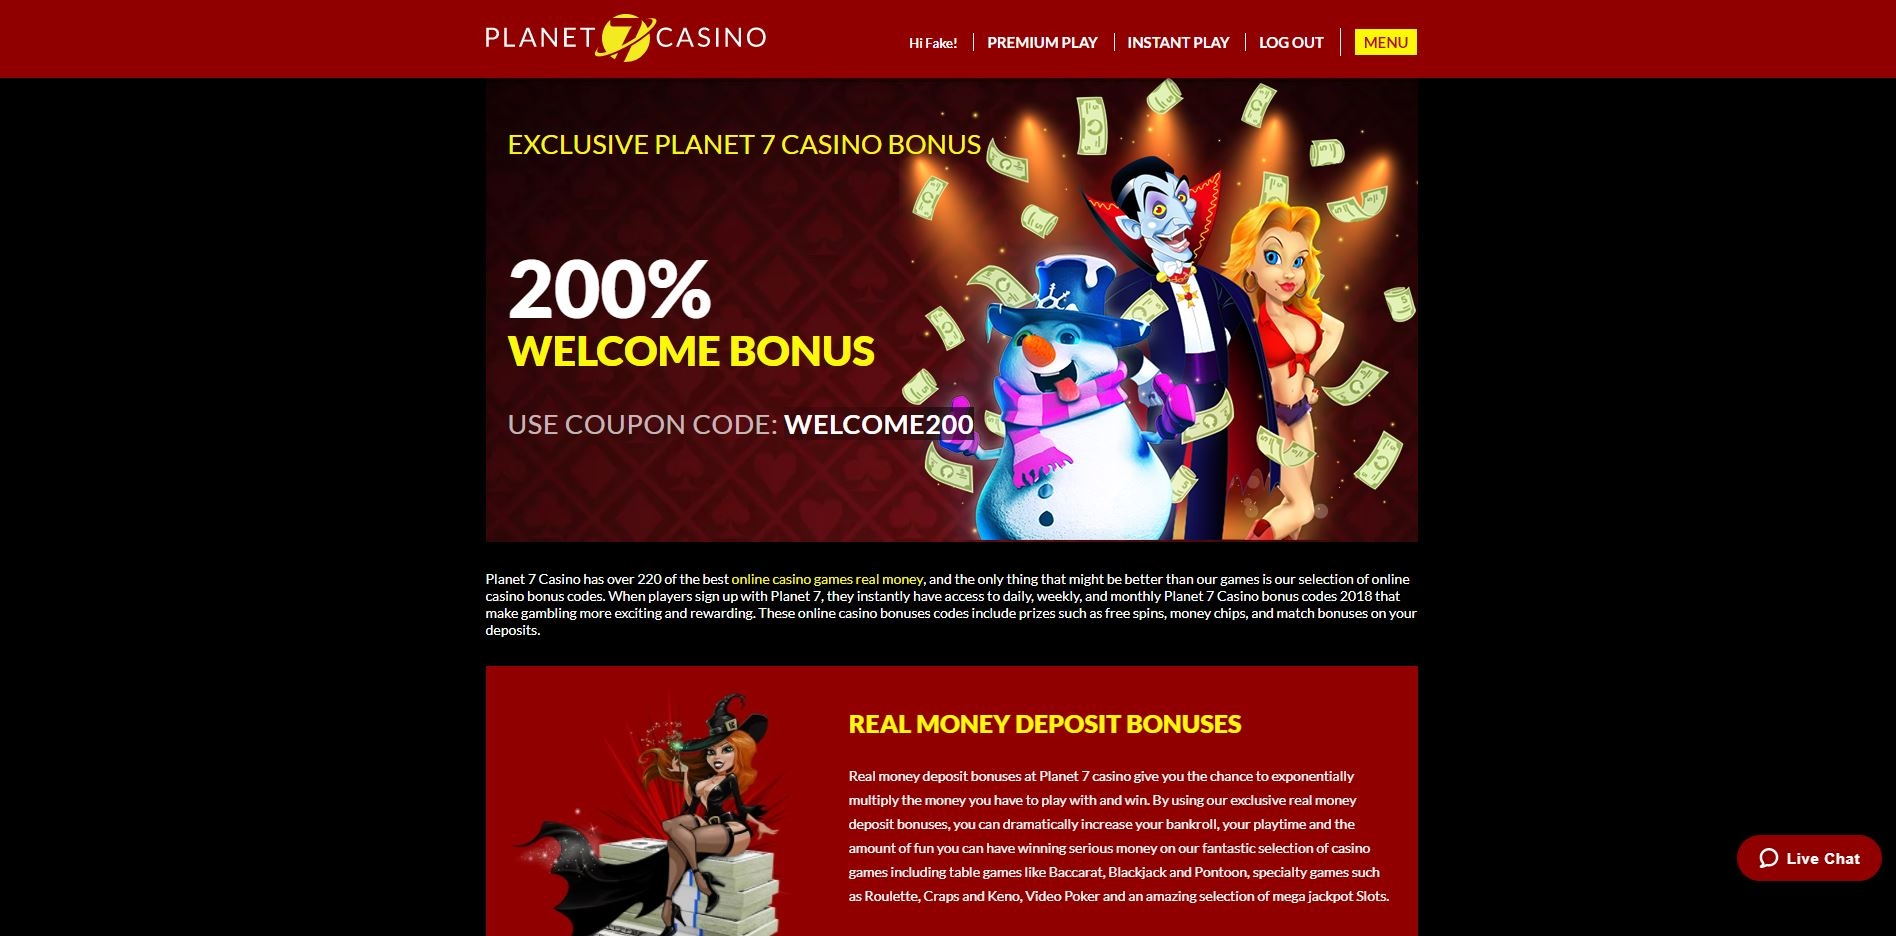 88 Gratis Spinne keng Kautioun vun Casino am Fair Go